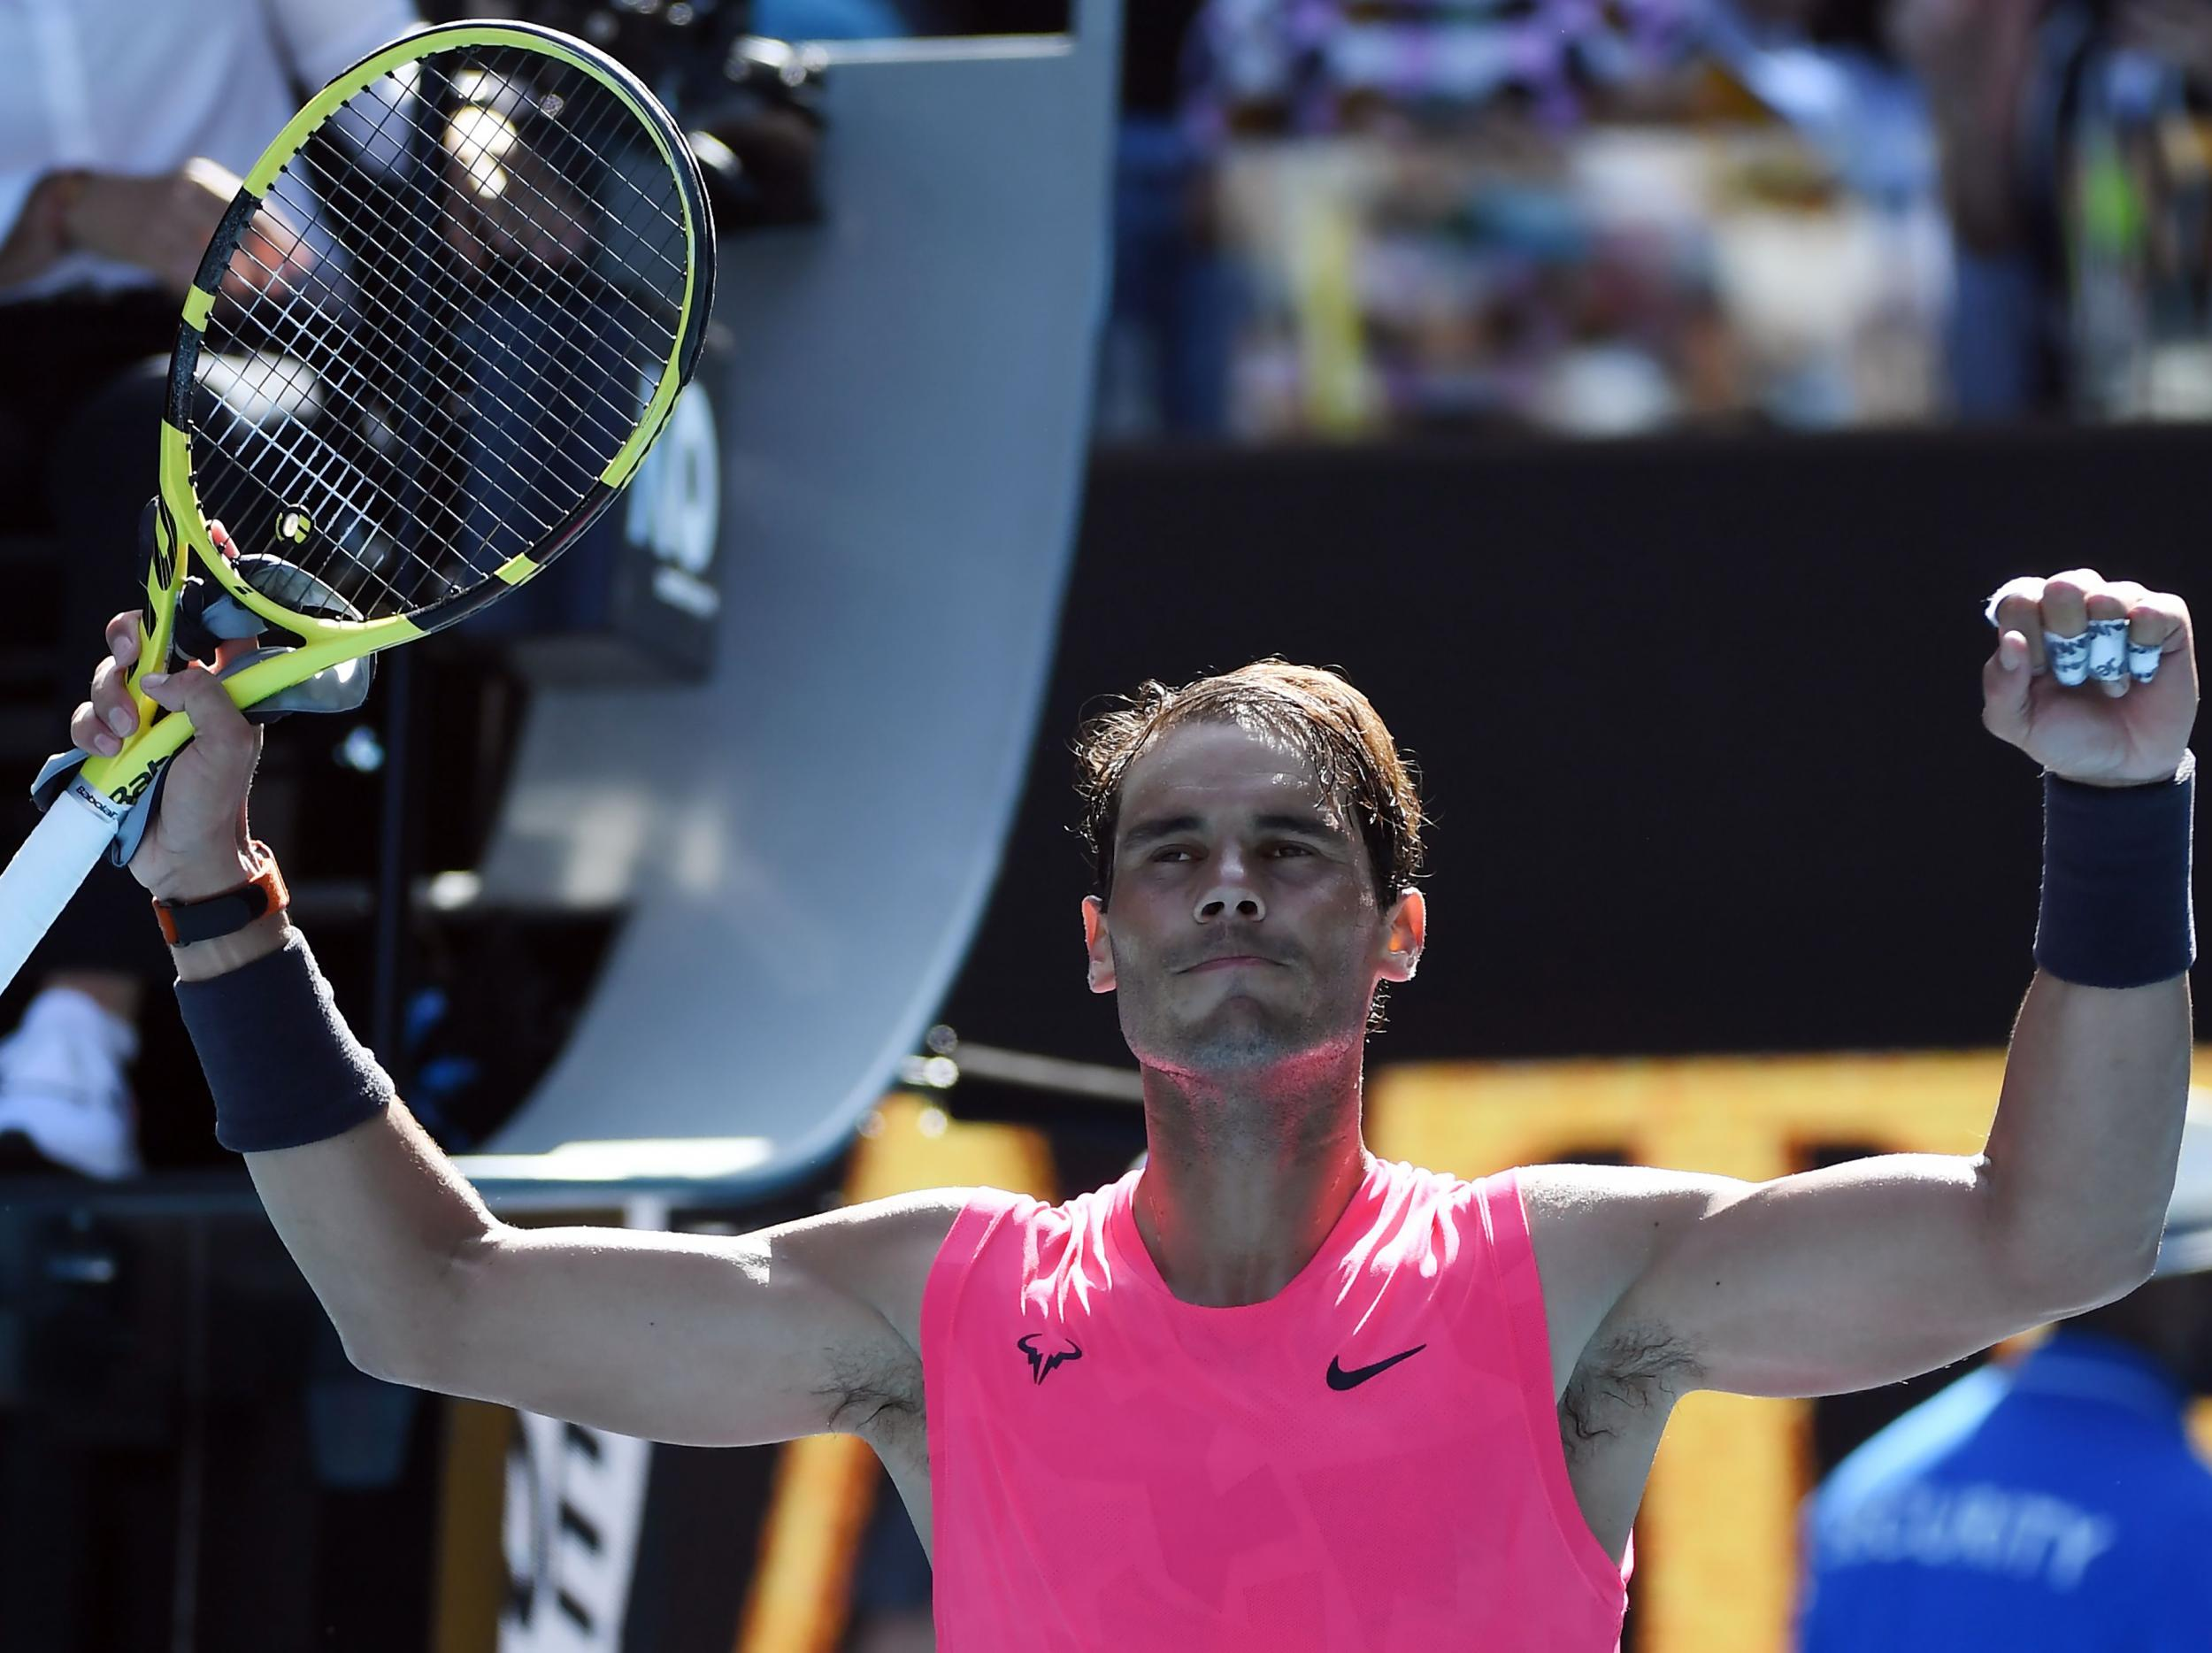 Rafa Nadal begins bid for 20th Grand-Slam title with routine opening Australian Open victory